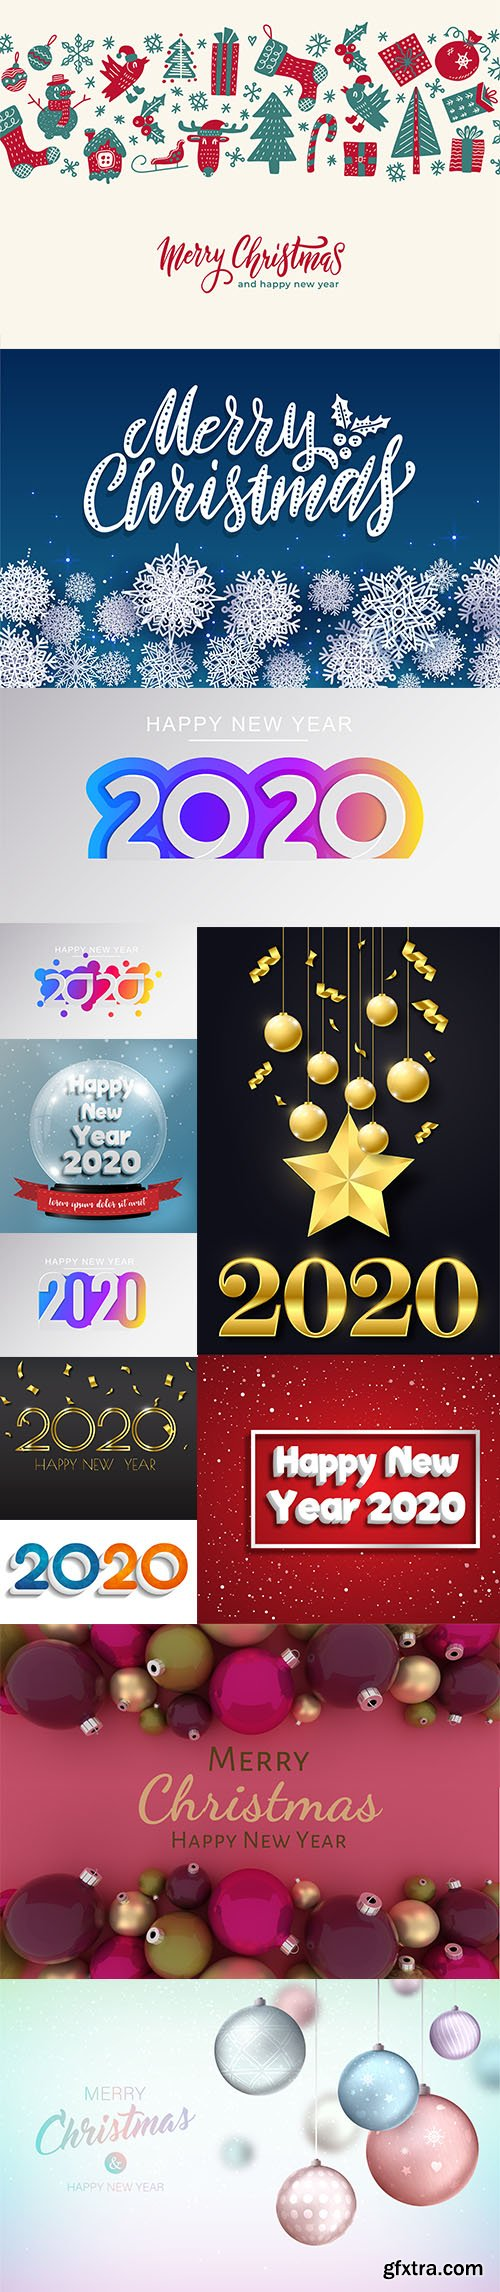 Merry Christmas and New Year 2020 Vector Illustrations Pack Vol 2